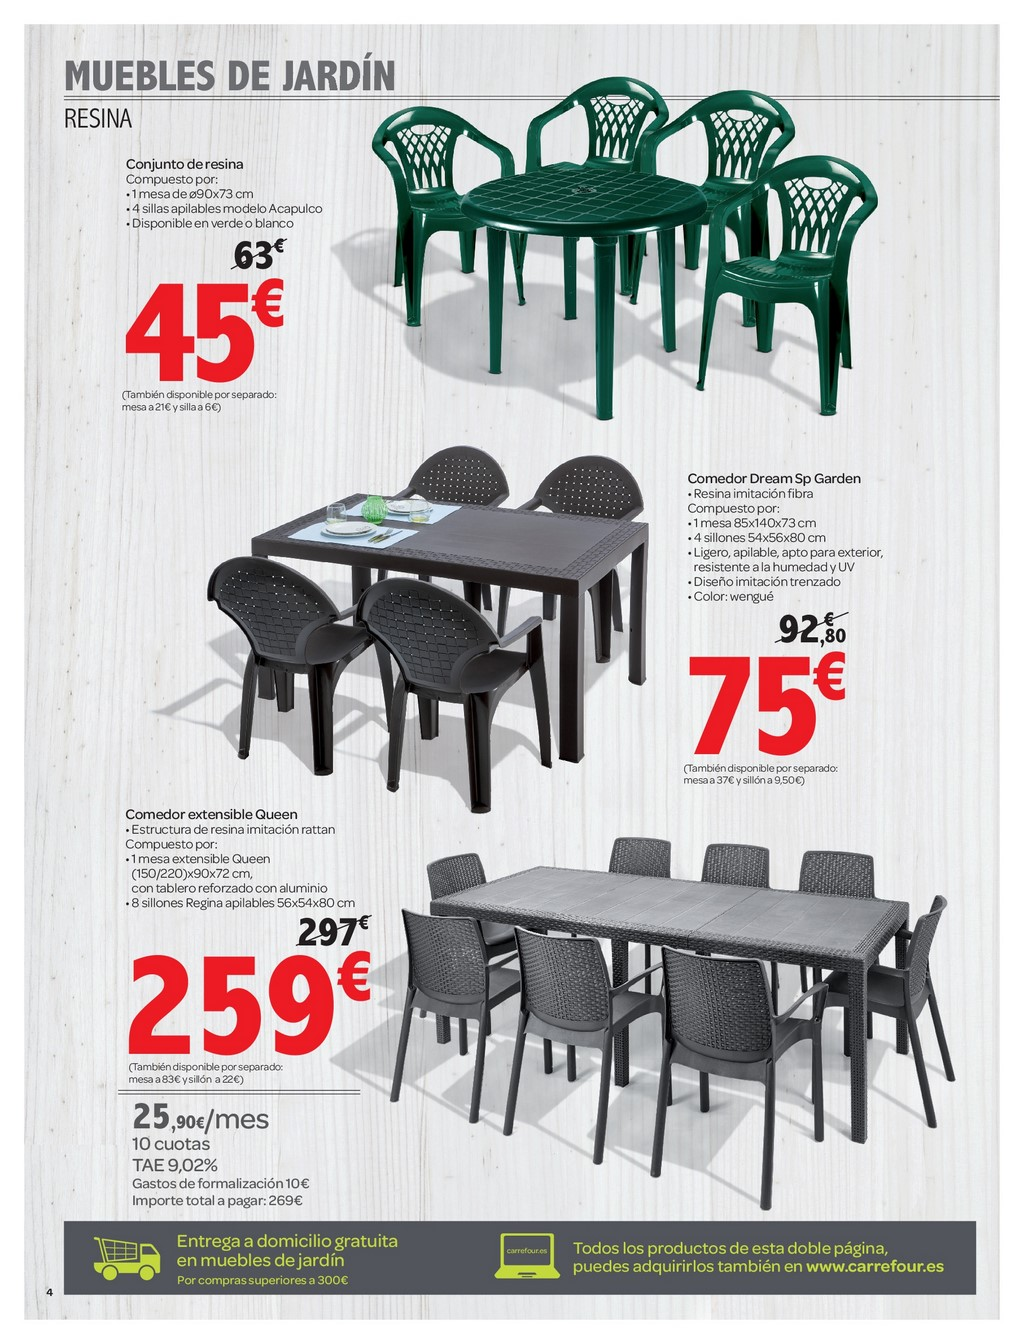 Muebles De Jardin De Carrefour Decorablog Revista De Decoración